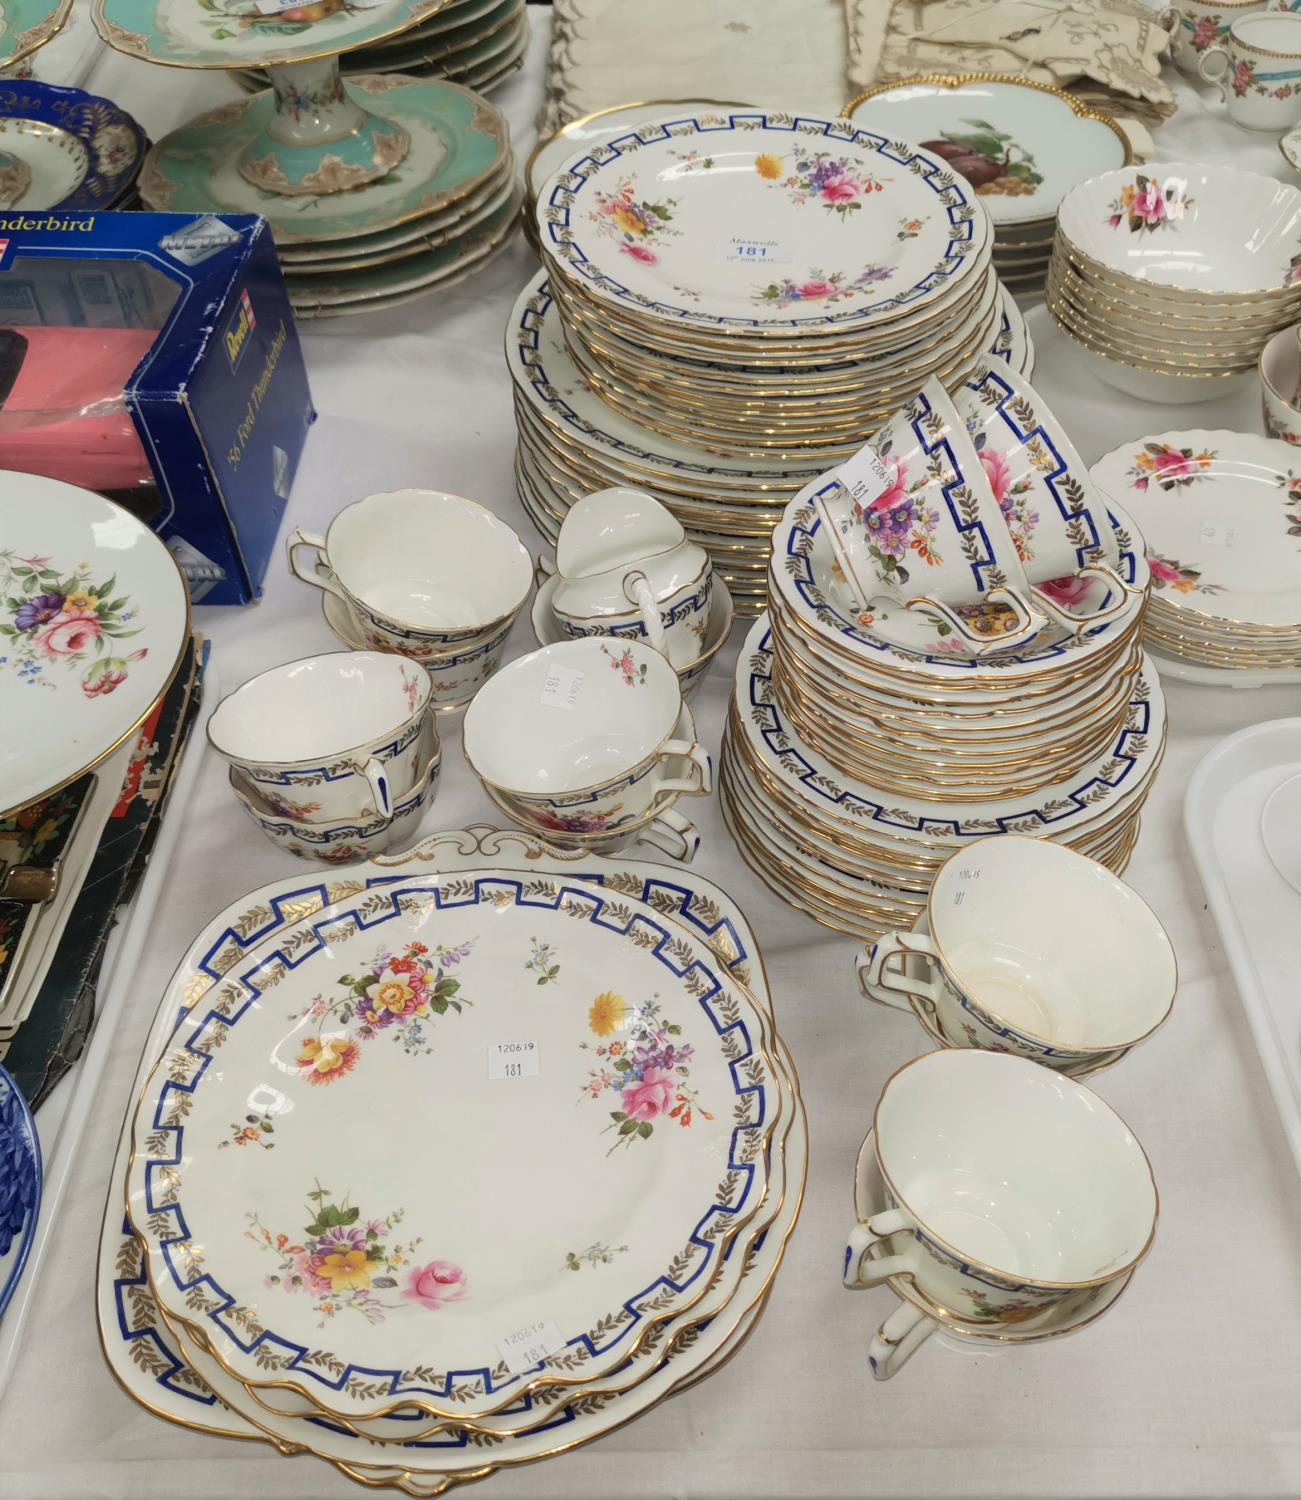 Lot 181 - A Royal Crown Derby dinner and tea service with polychrome bouquets of flowers and intertwined